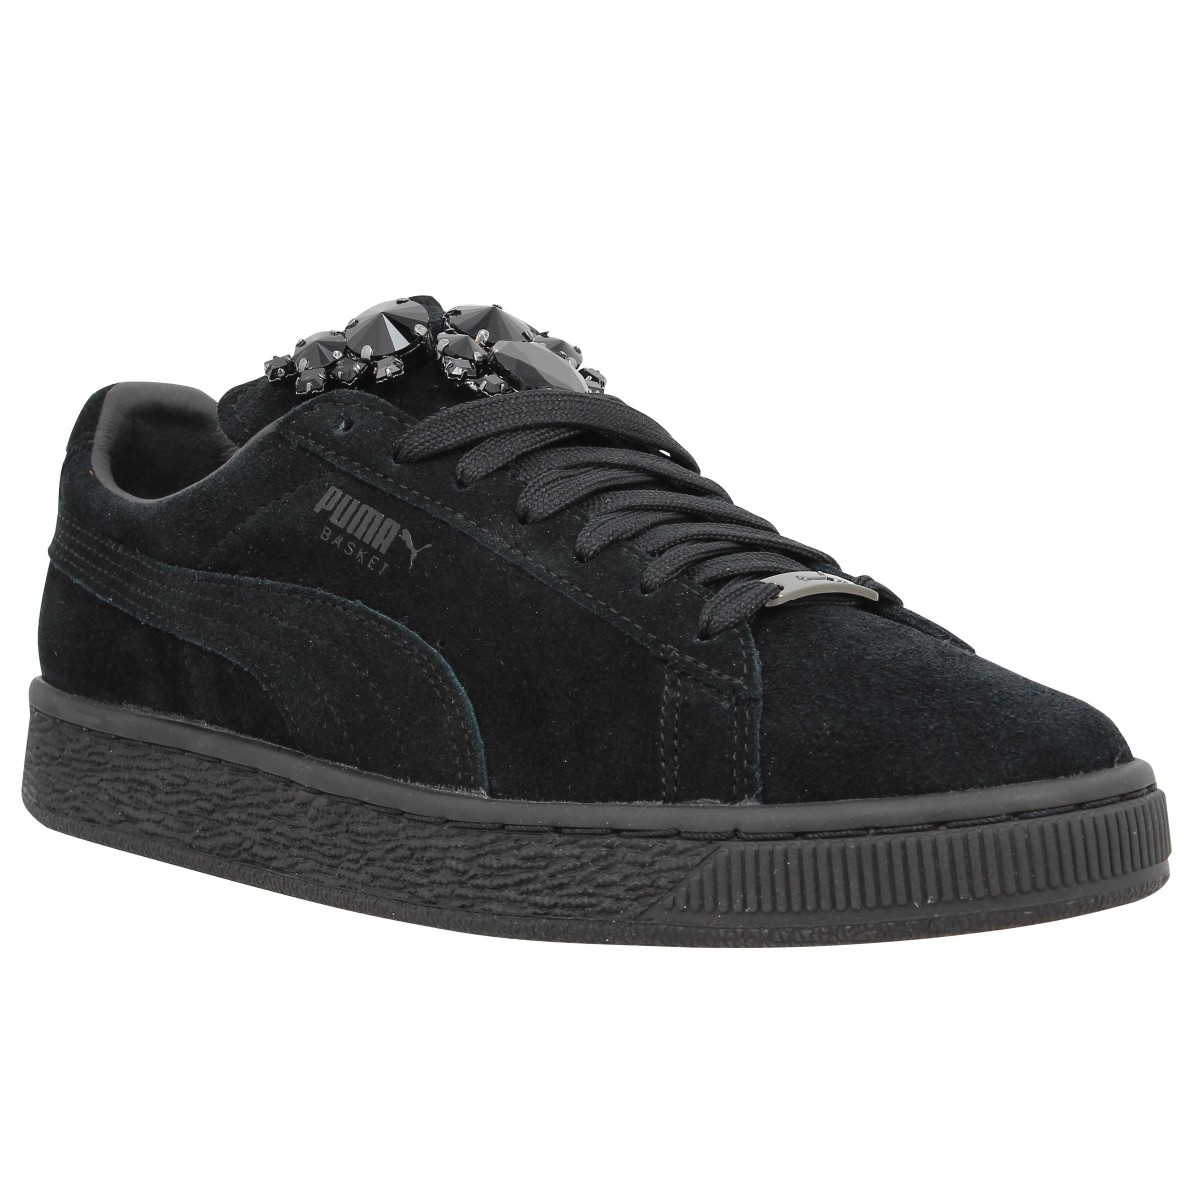 Baskets PUMA Basket Jewels Noir